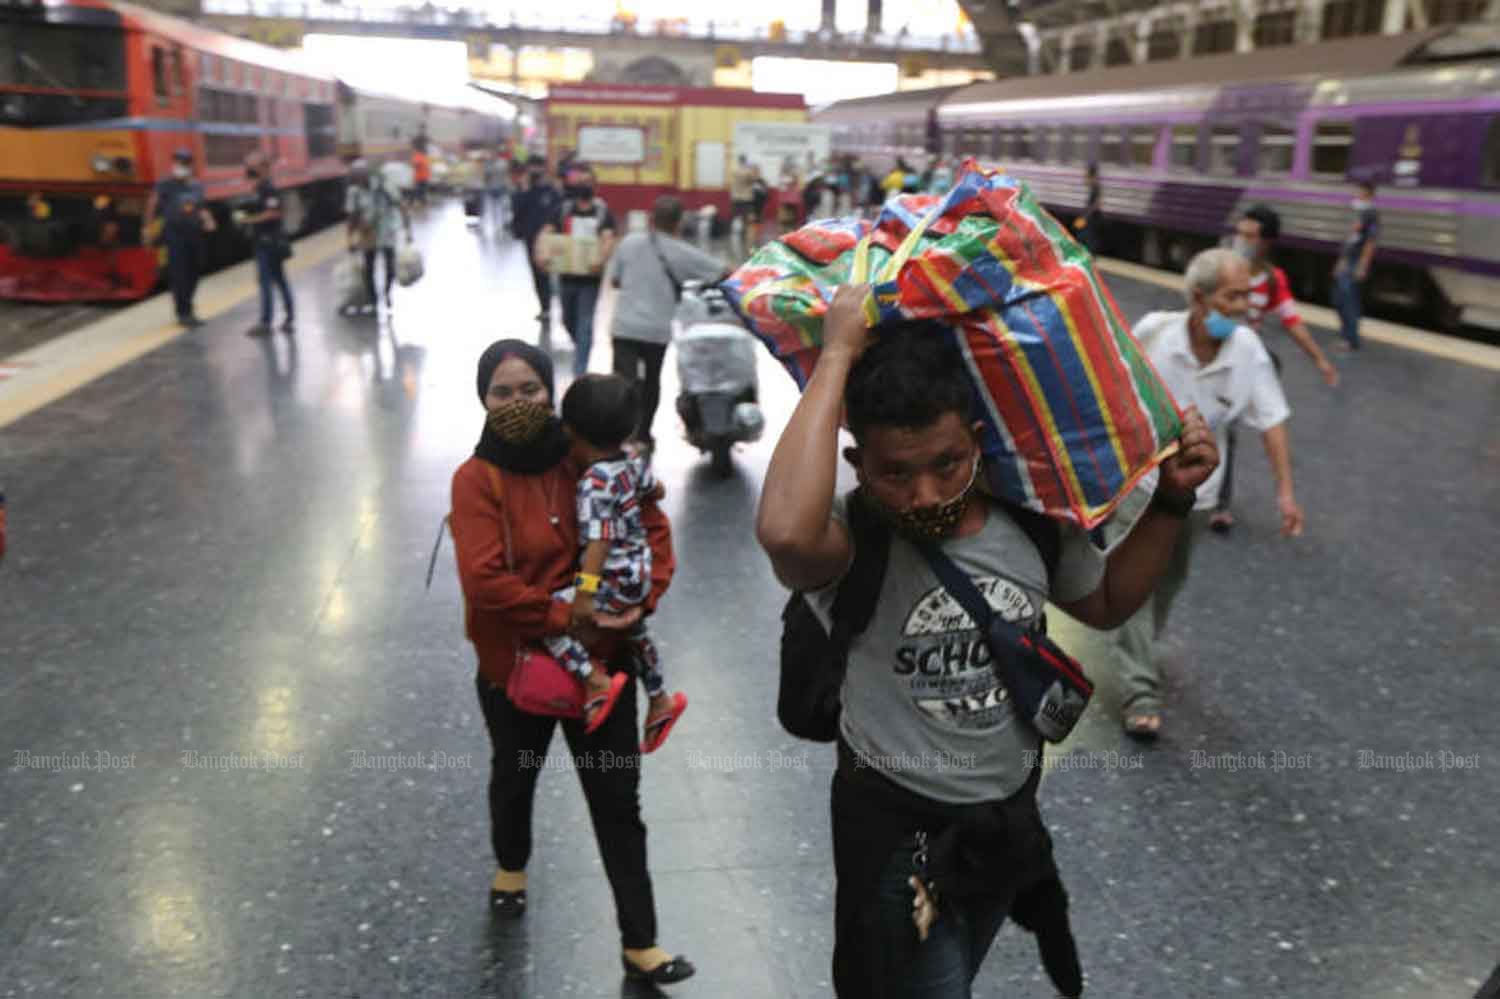 People arrive at Hua Lamphong railway station in Bangkok after returning from the provinces following the long weekend in July. (Photo: Wichan Charoenkiatpakul)